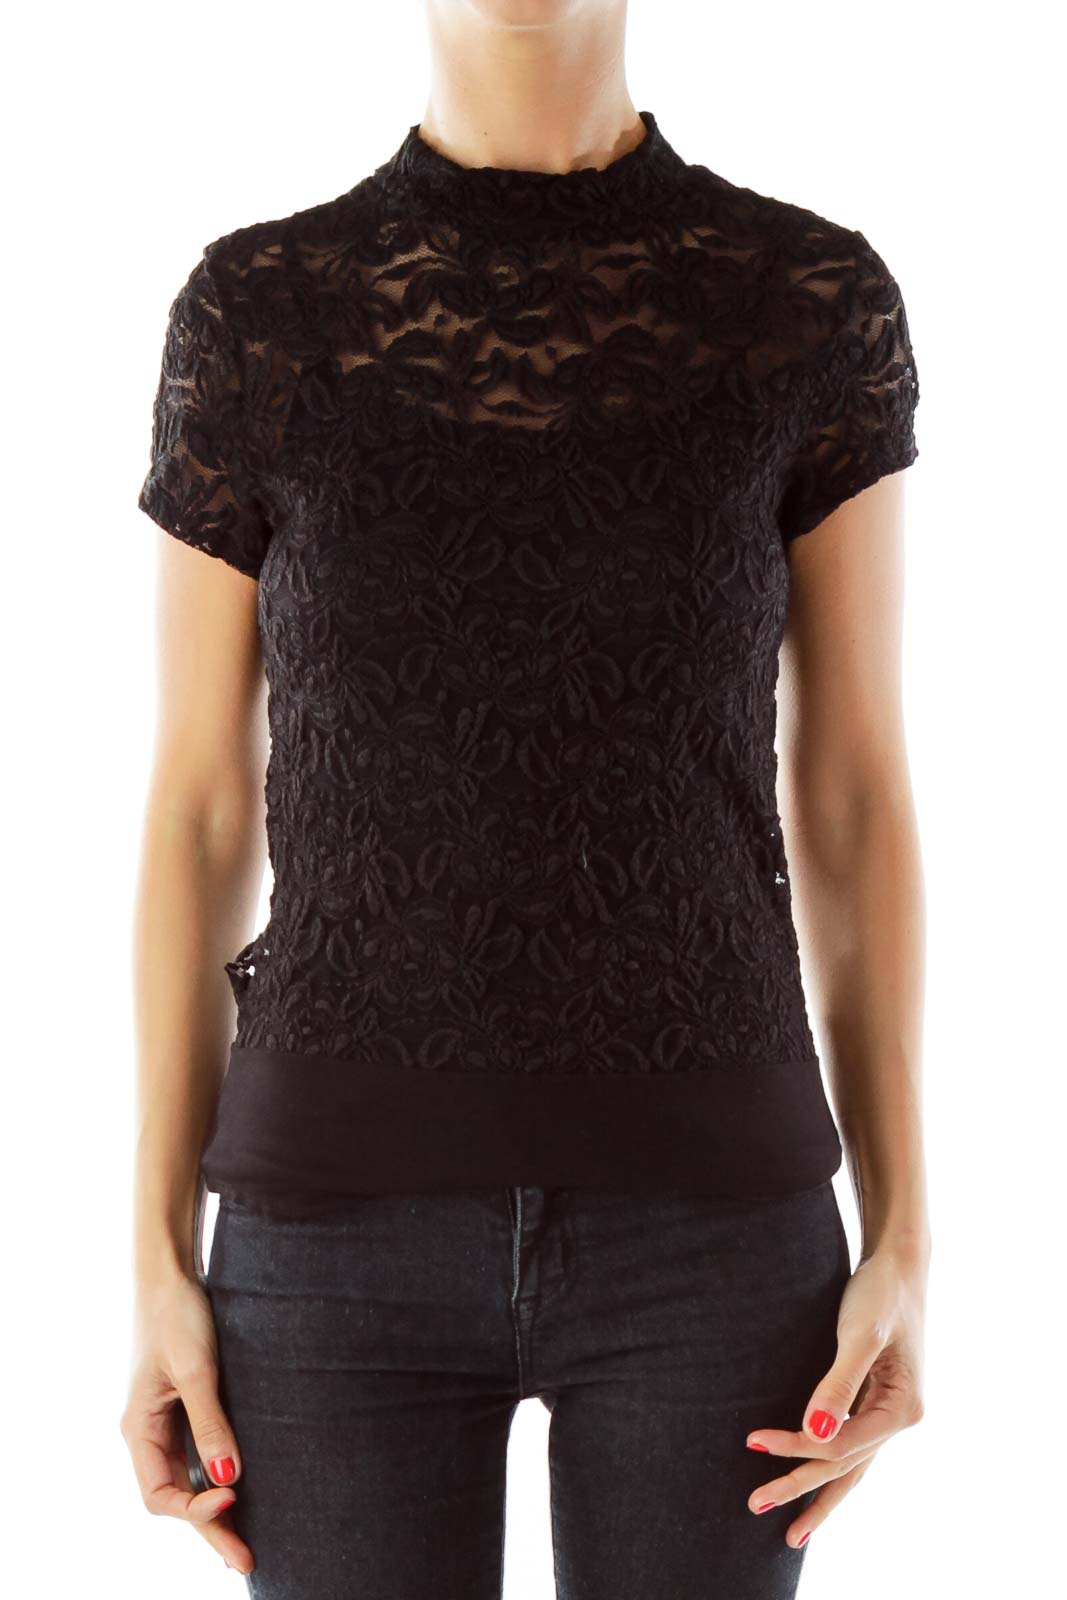 Black Lace Body Suit